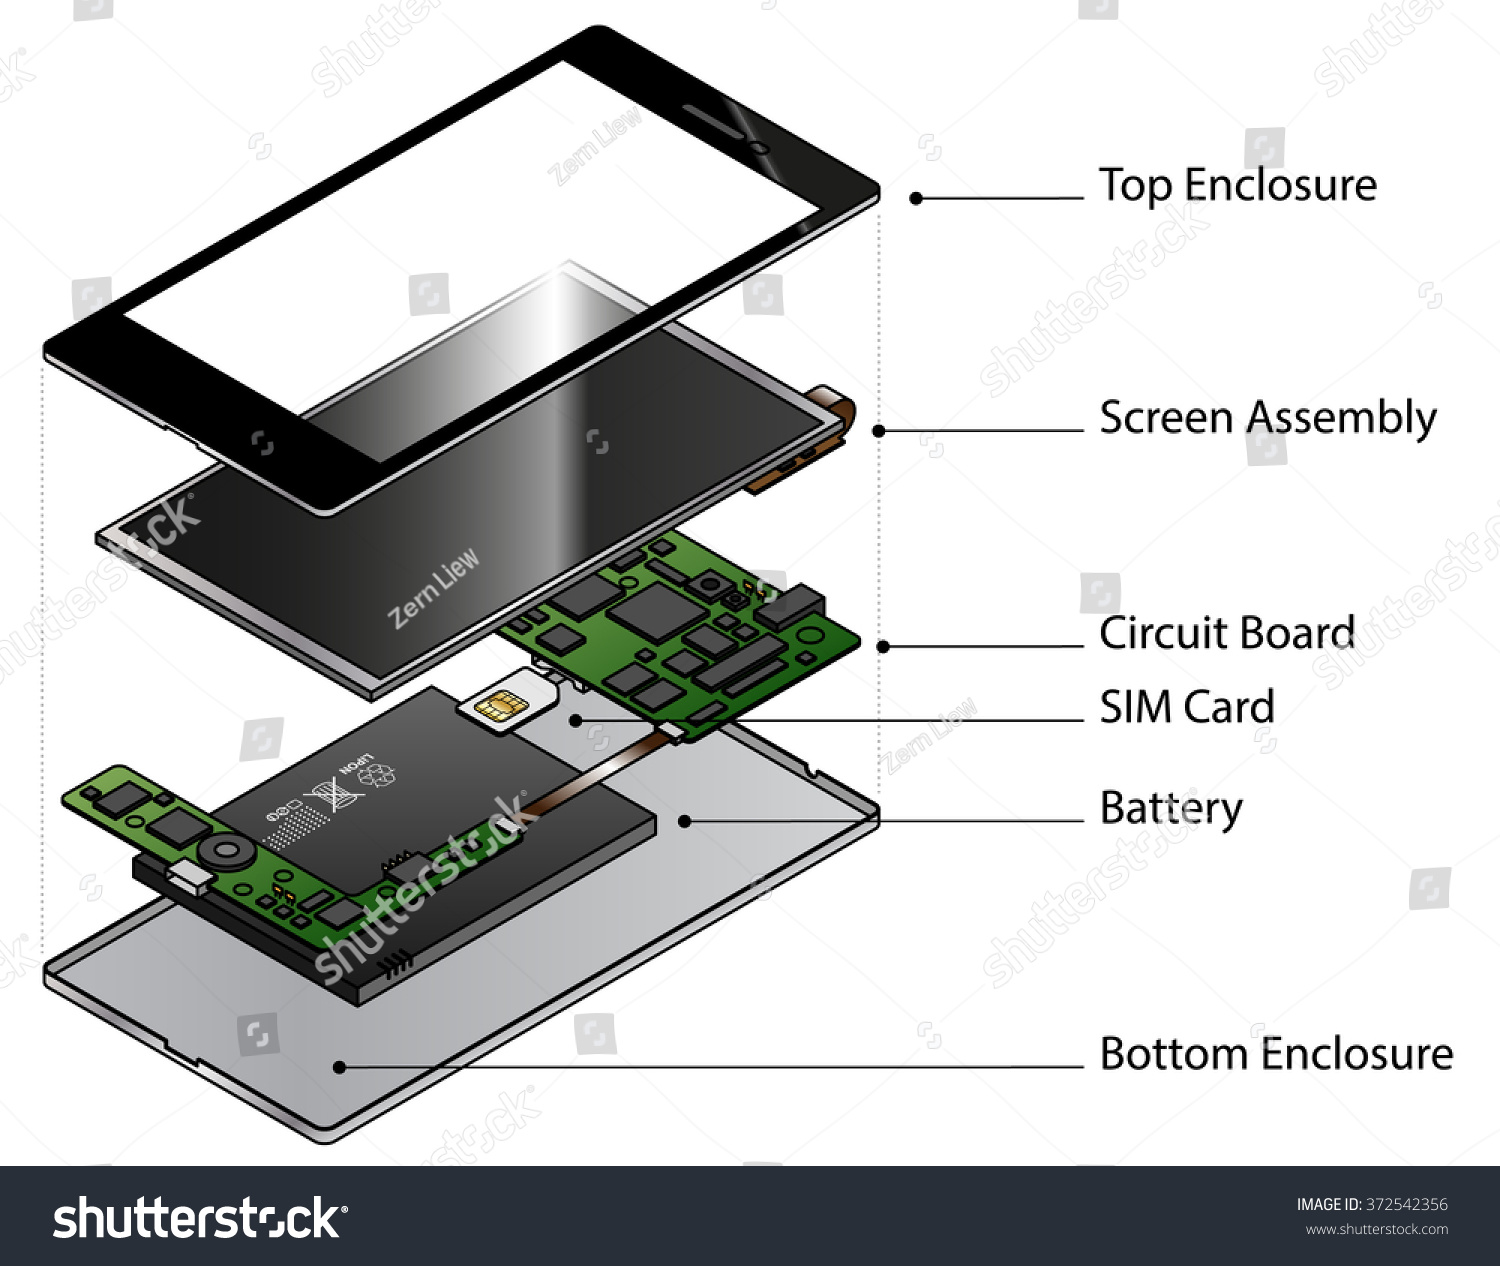 Exploded Diagram Showing Internal Components Smart Stock Vector Circuit With Labels An The Of A Phone